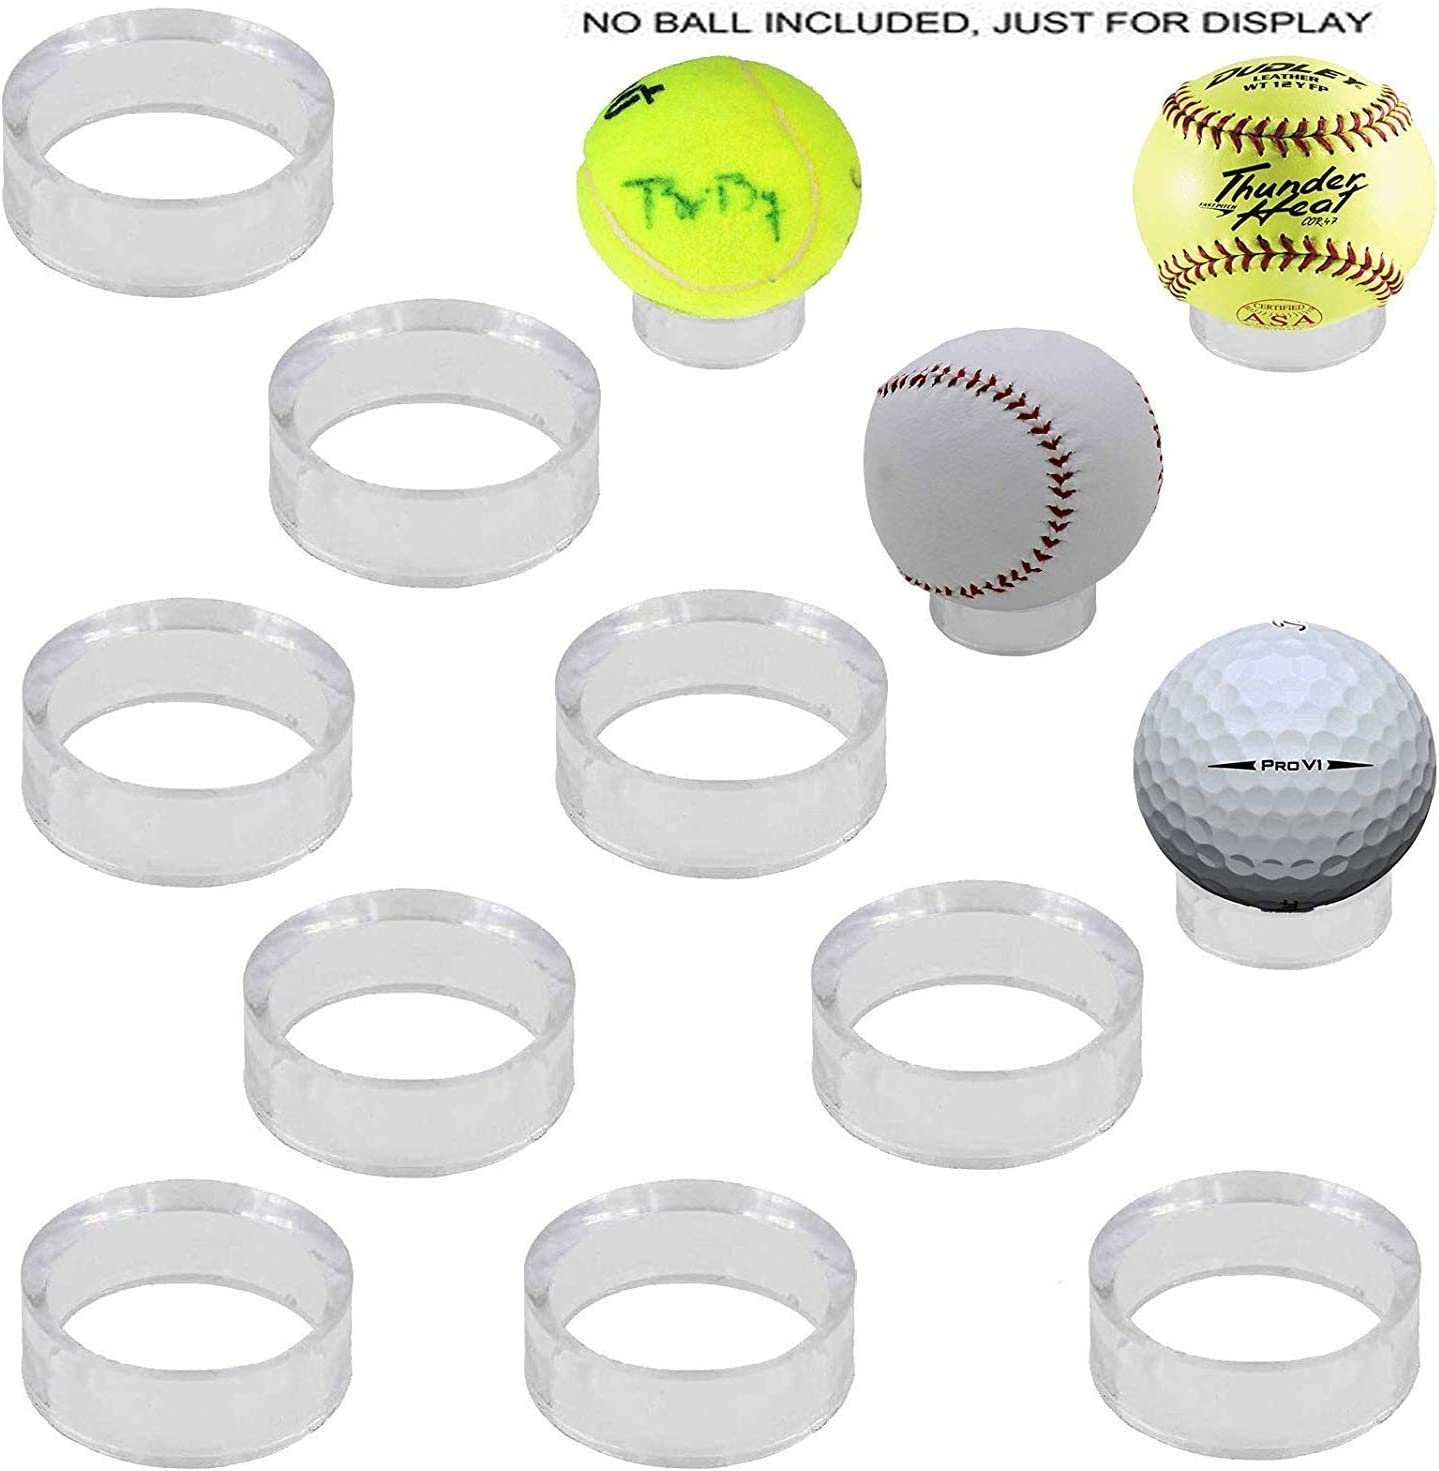 Does not Include Ball Clear Acrylic Round Pedestal Display Stand Ring Holder for Baseball Volleyball Softball Soccer Ball Tennis Billiard Bowling Ball Pack of 10